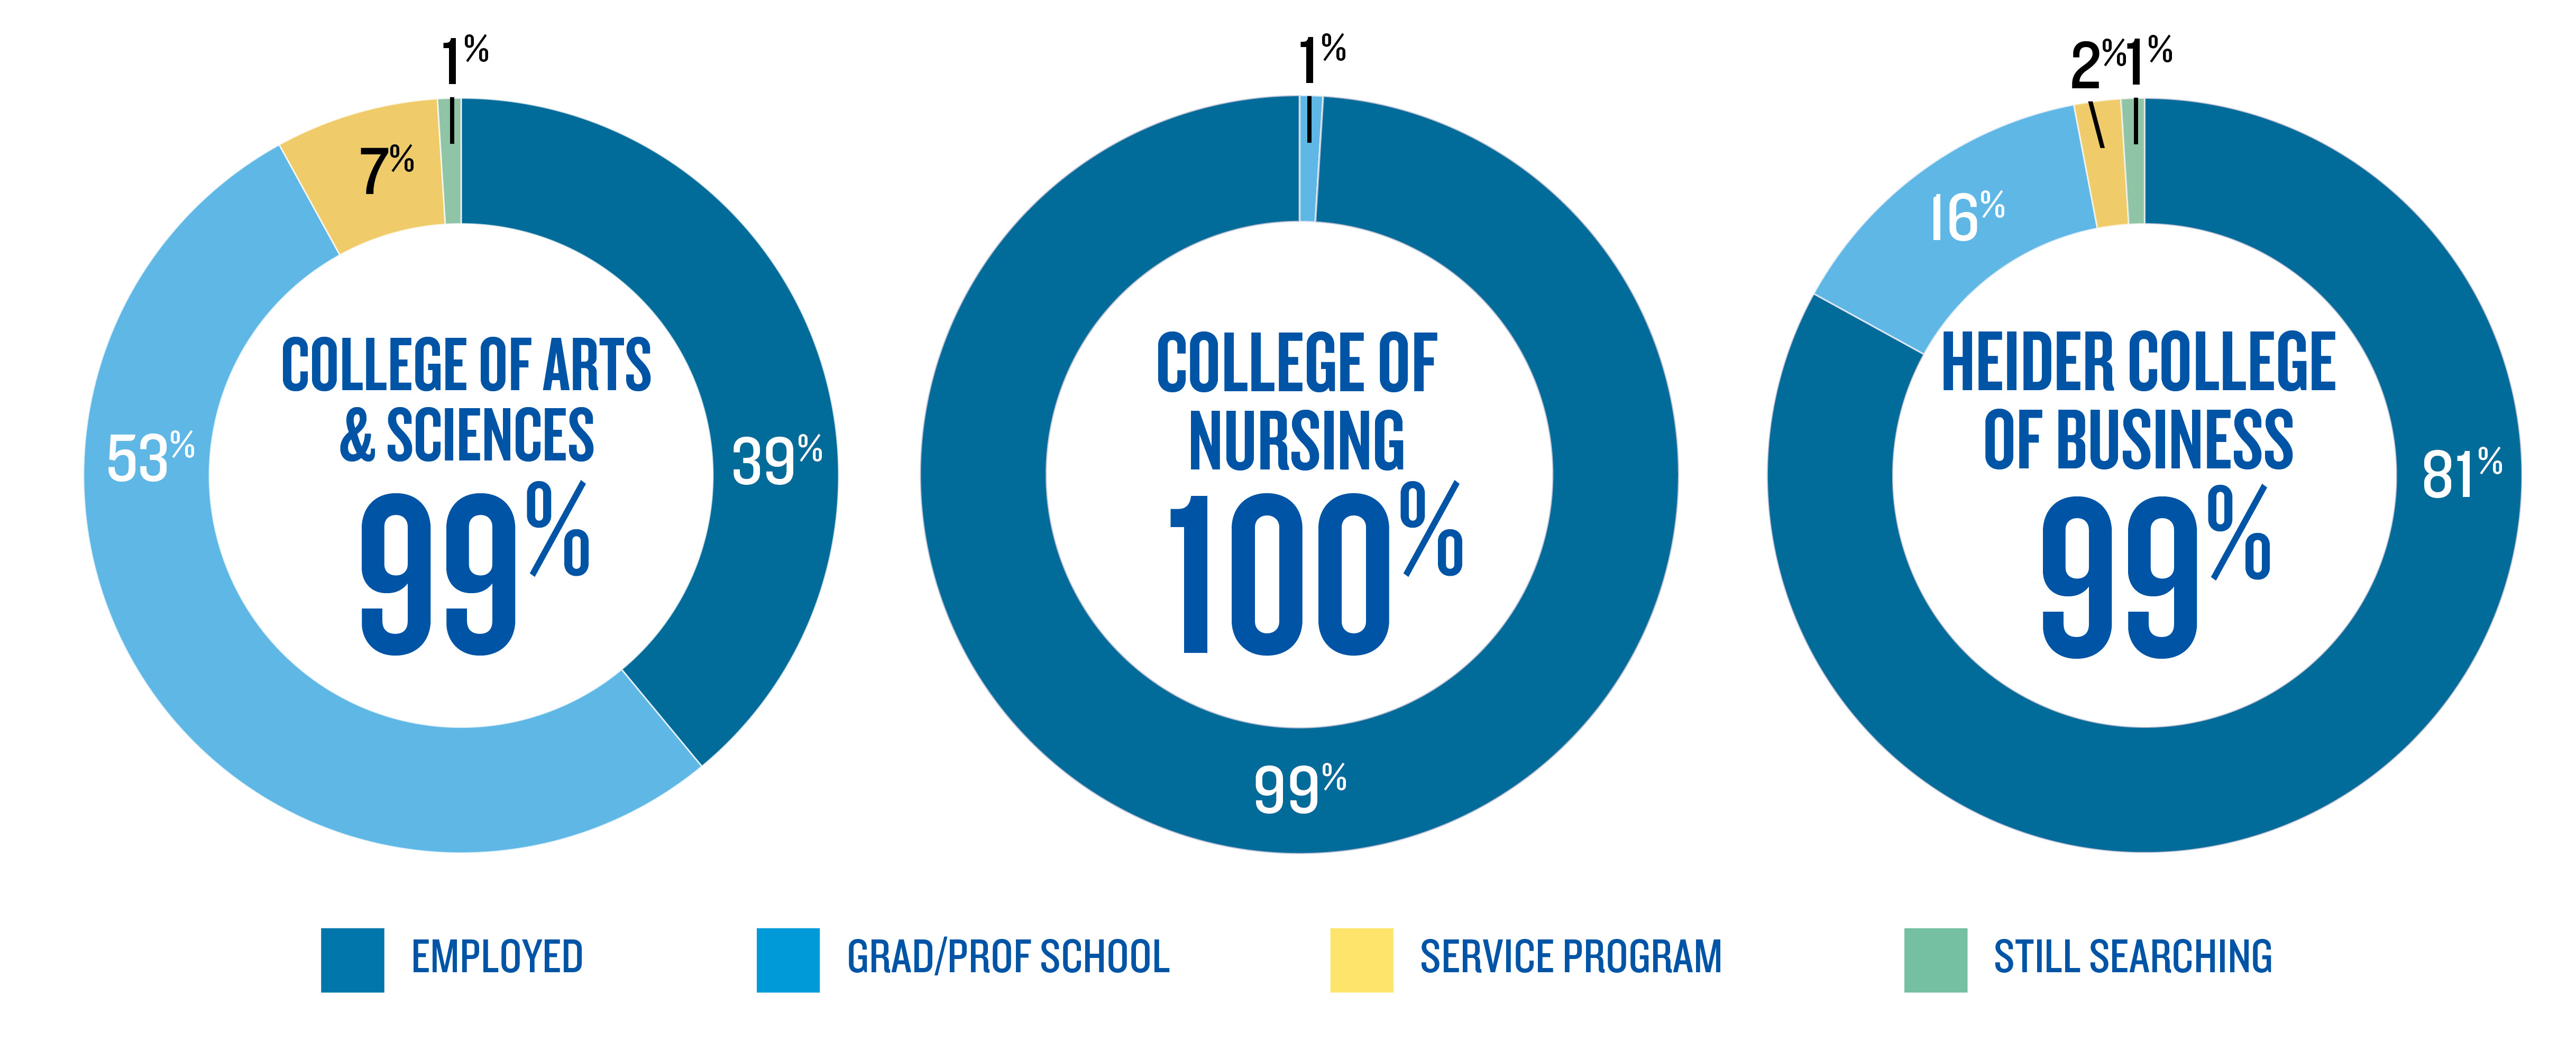 Creighton's 2019 Outcomes by College